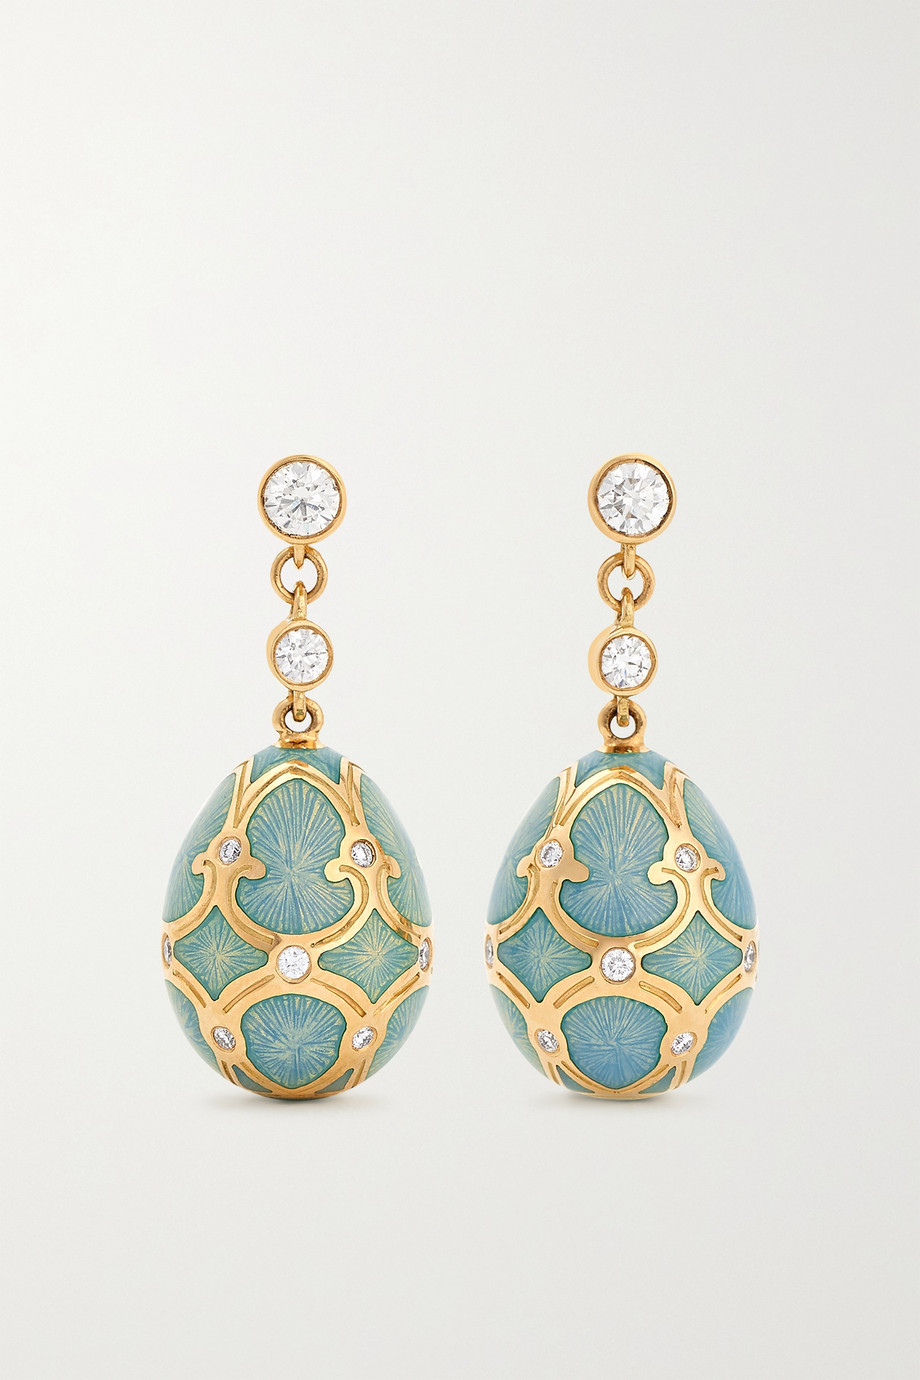 FABERGÉ Heritage 18-karat gold, enamel and diamond earrings